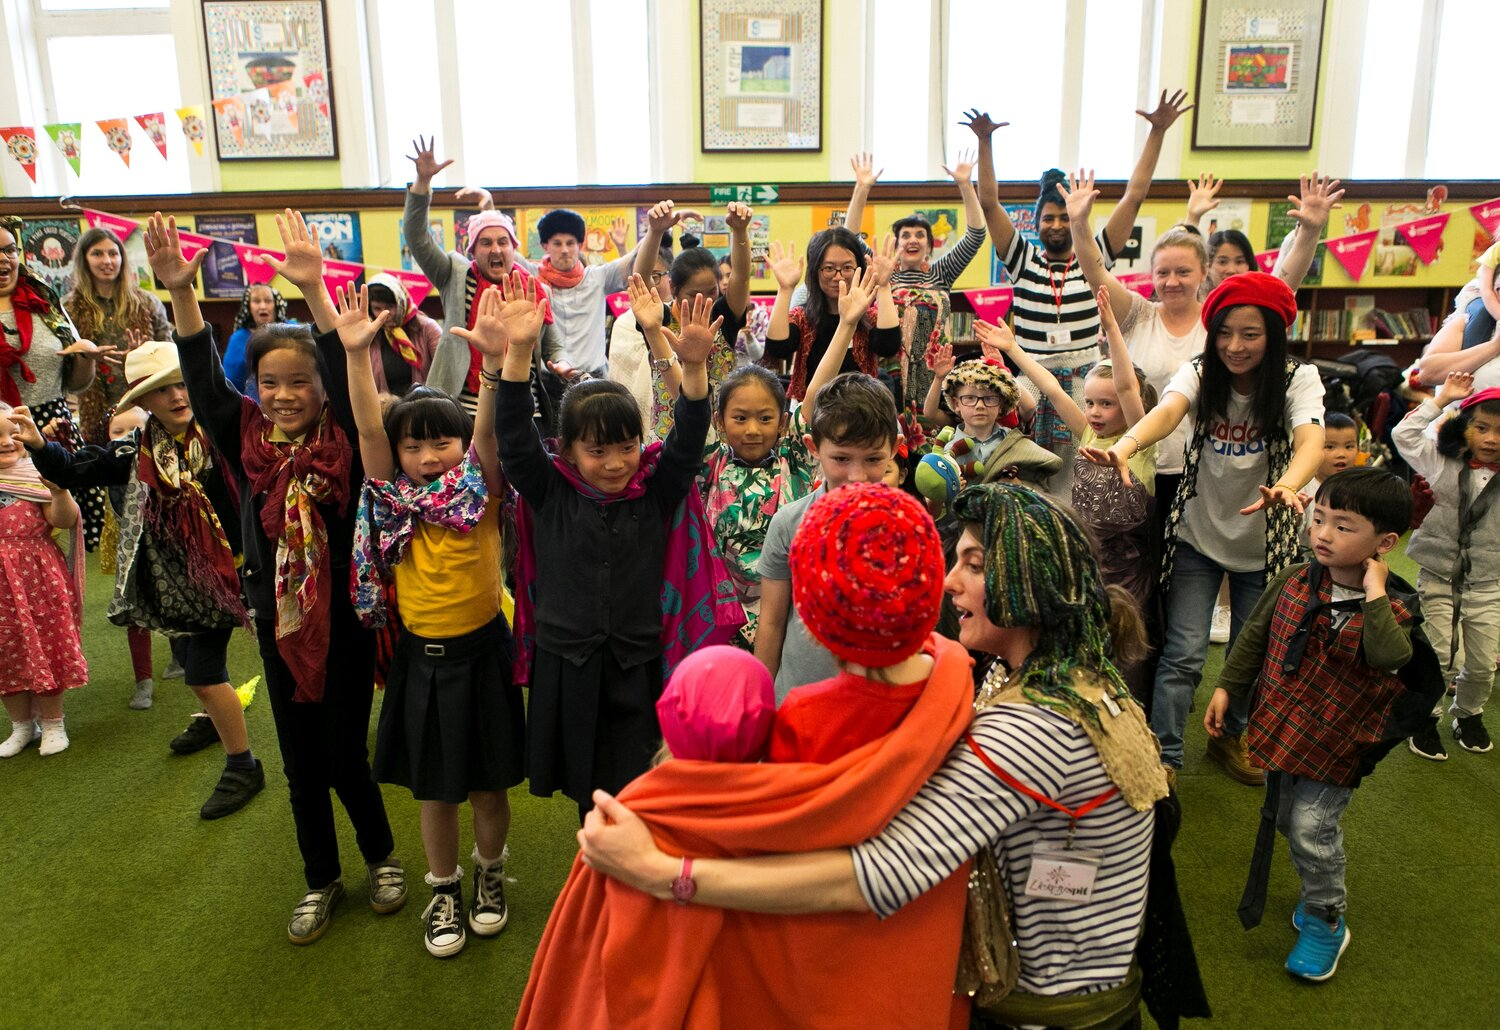 workshop with lots of children and young people waving arms in the air and dressed in costume.